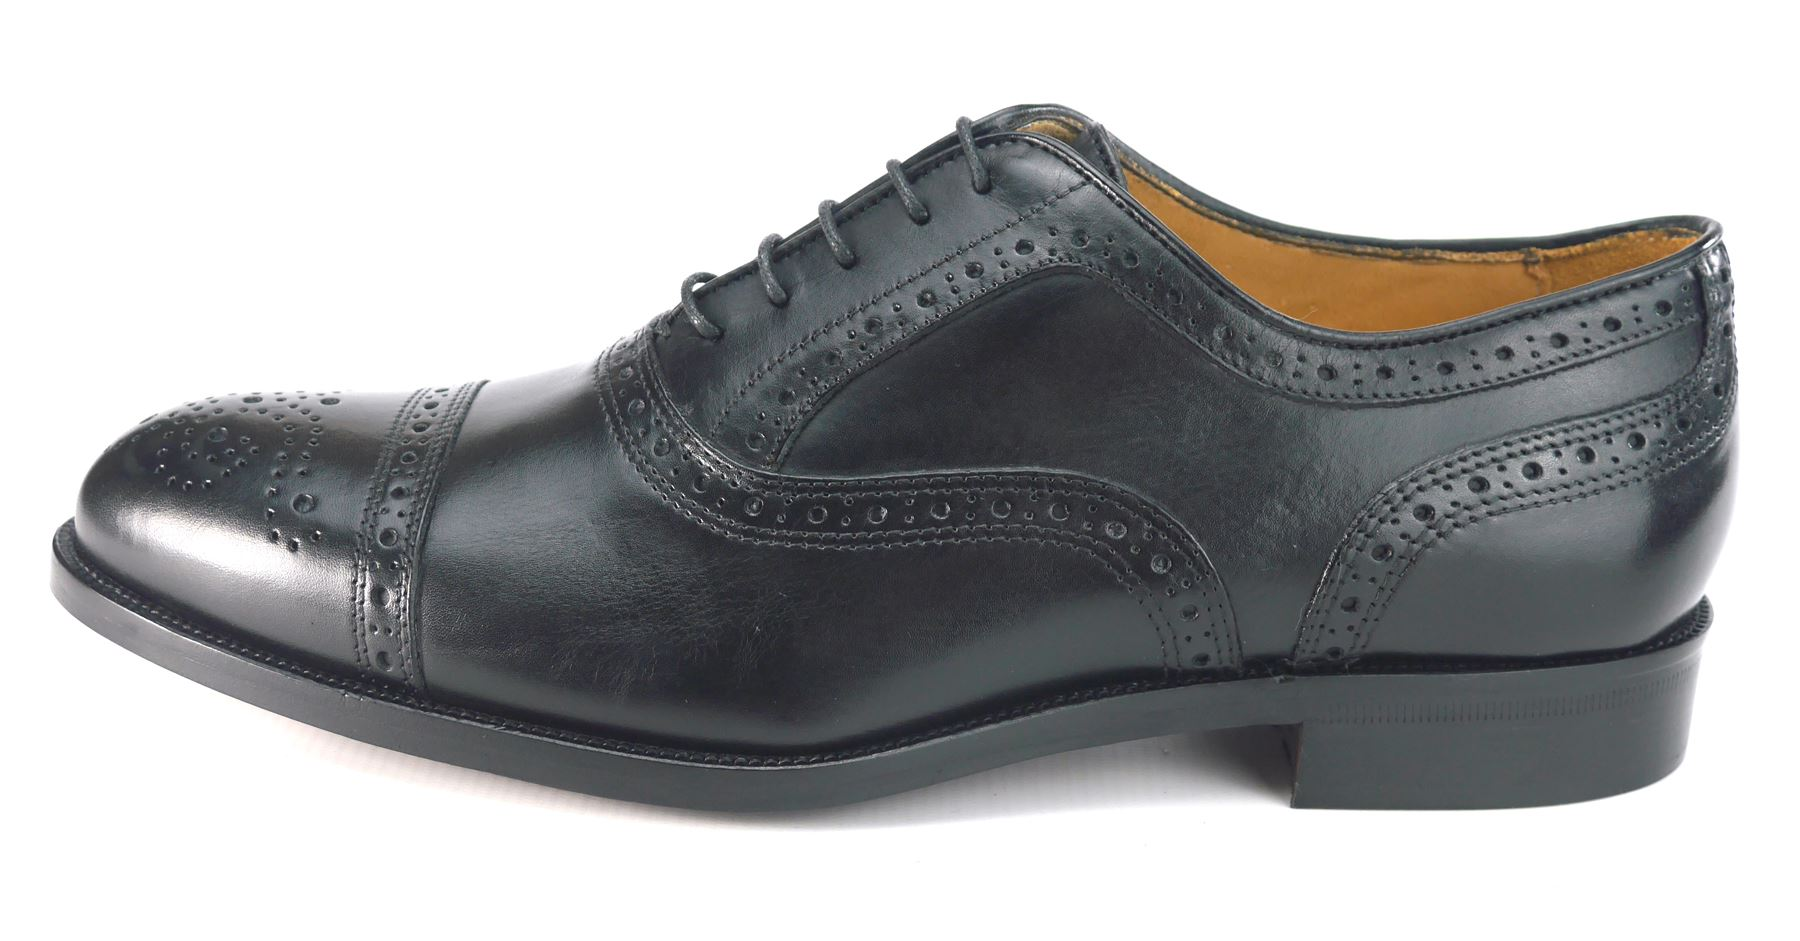 Mercanti Fiorentini Mens Lace Up All Leather Brogue Oxford Tan or ... d9b9a3fd534